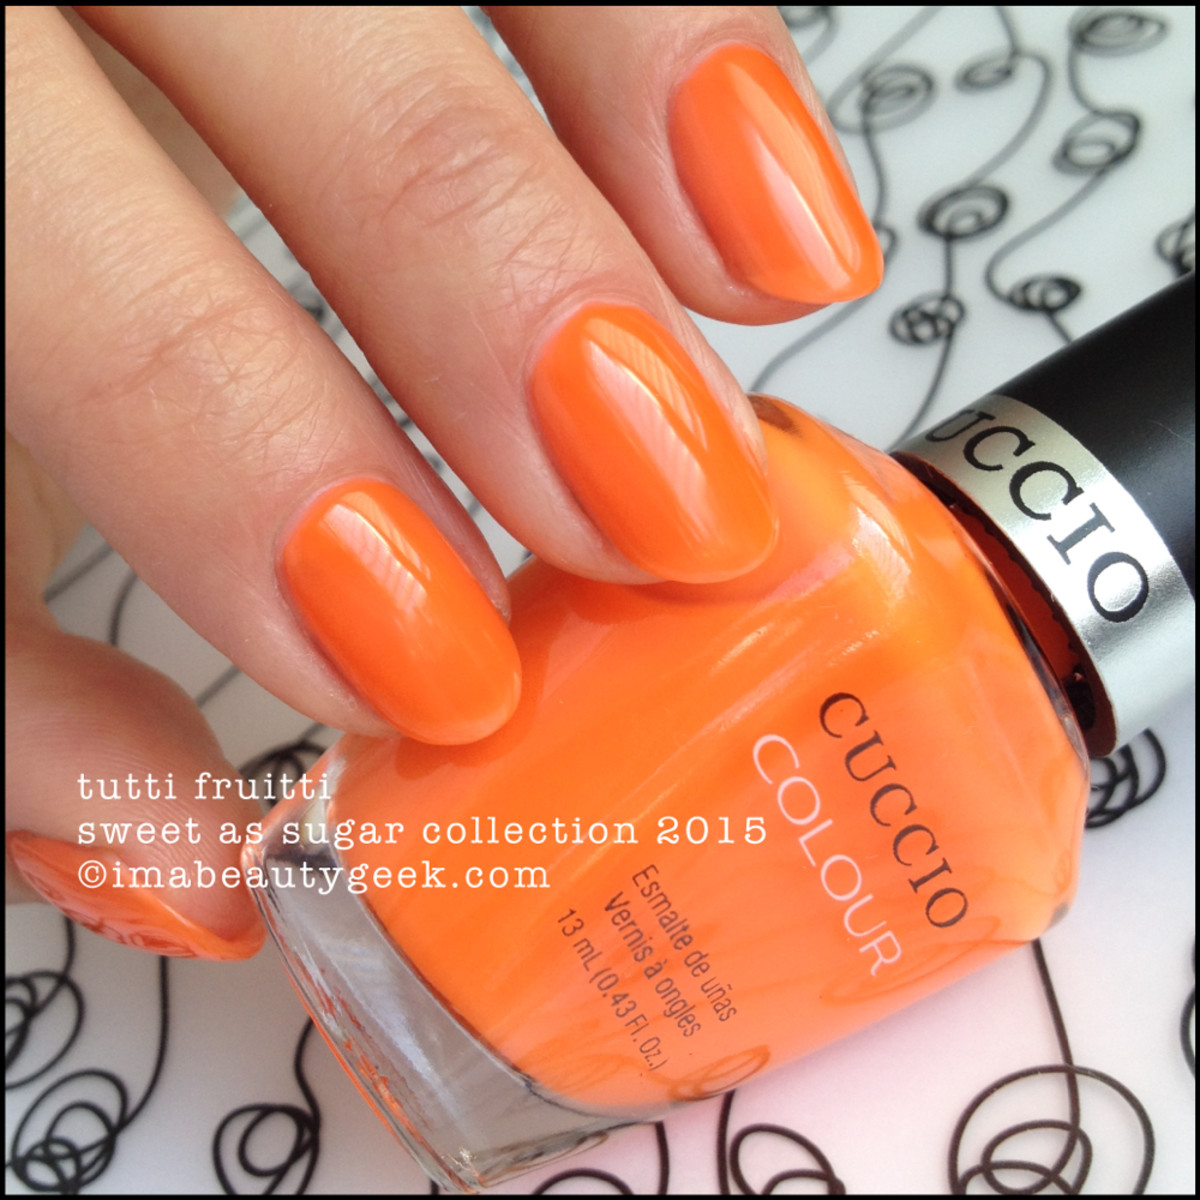 Cuccio Colour Nail Polish Tutti Fruitti Sweet as Sugar Collection 2015